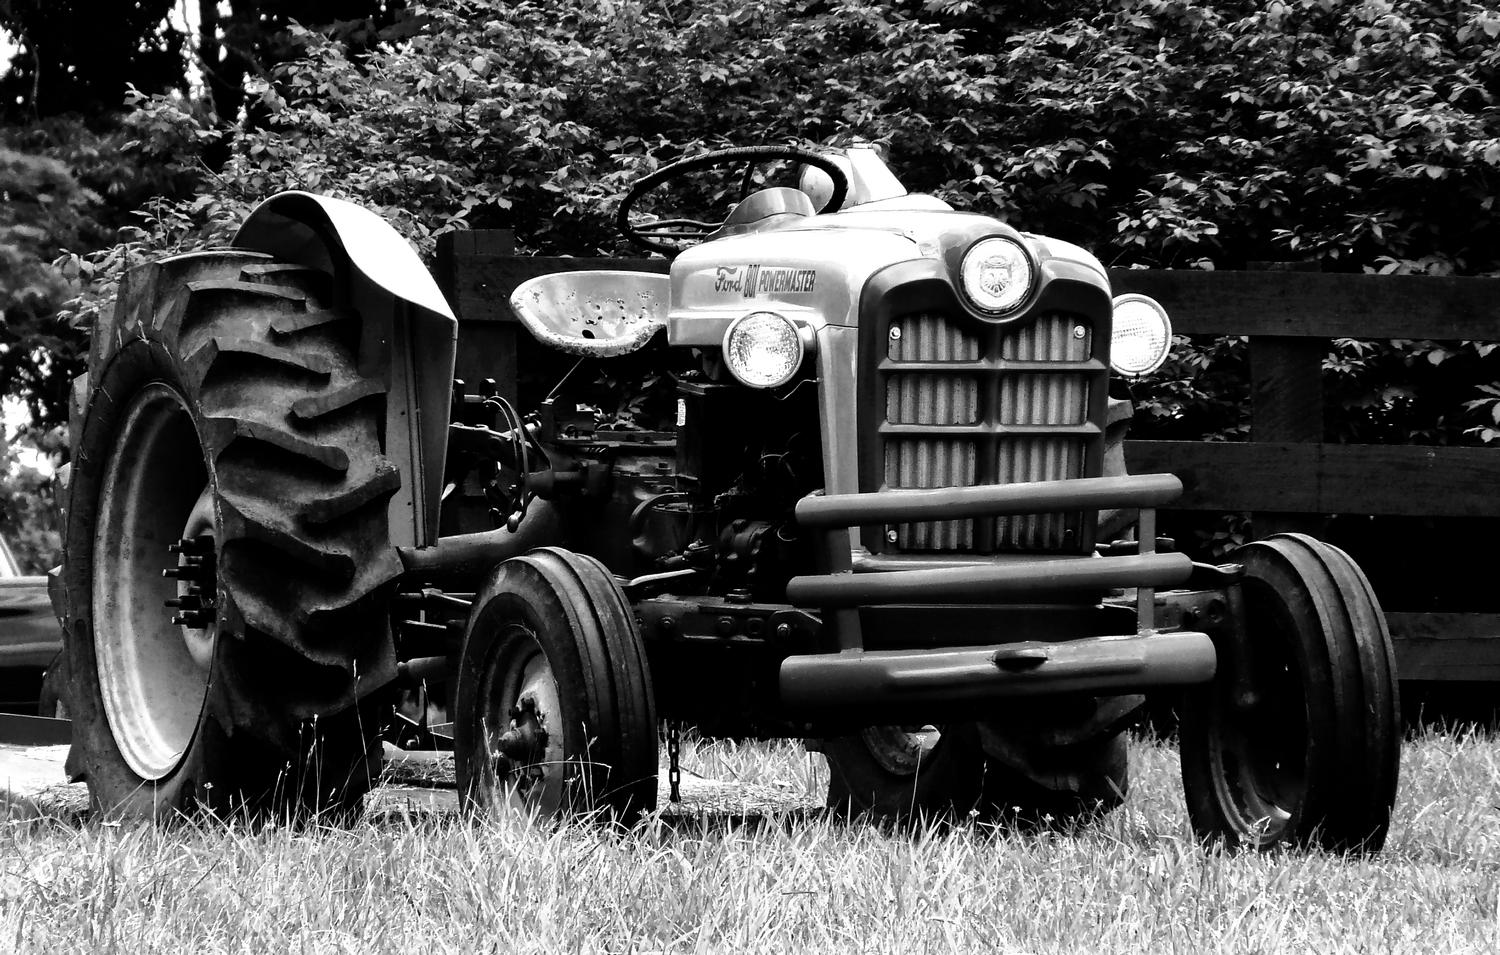 Old Ford tractor - Here's the tractor in dynamic black and white - Panasonic DMC-FZ18 - - art  - photography - by Tony Karp